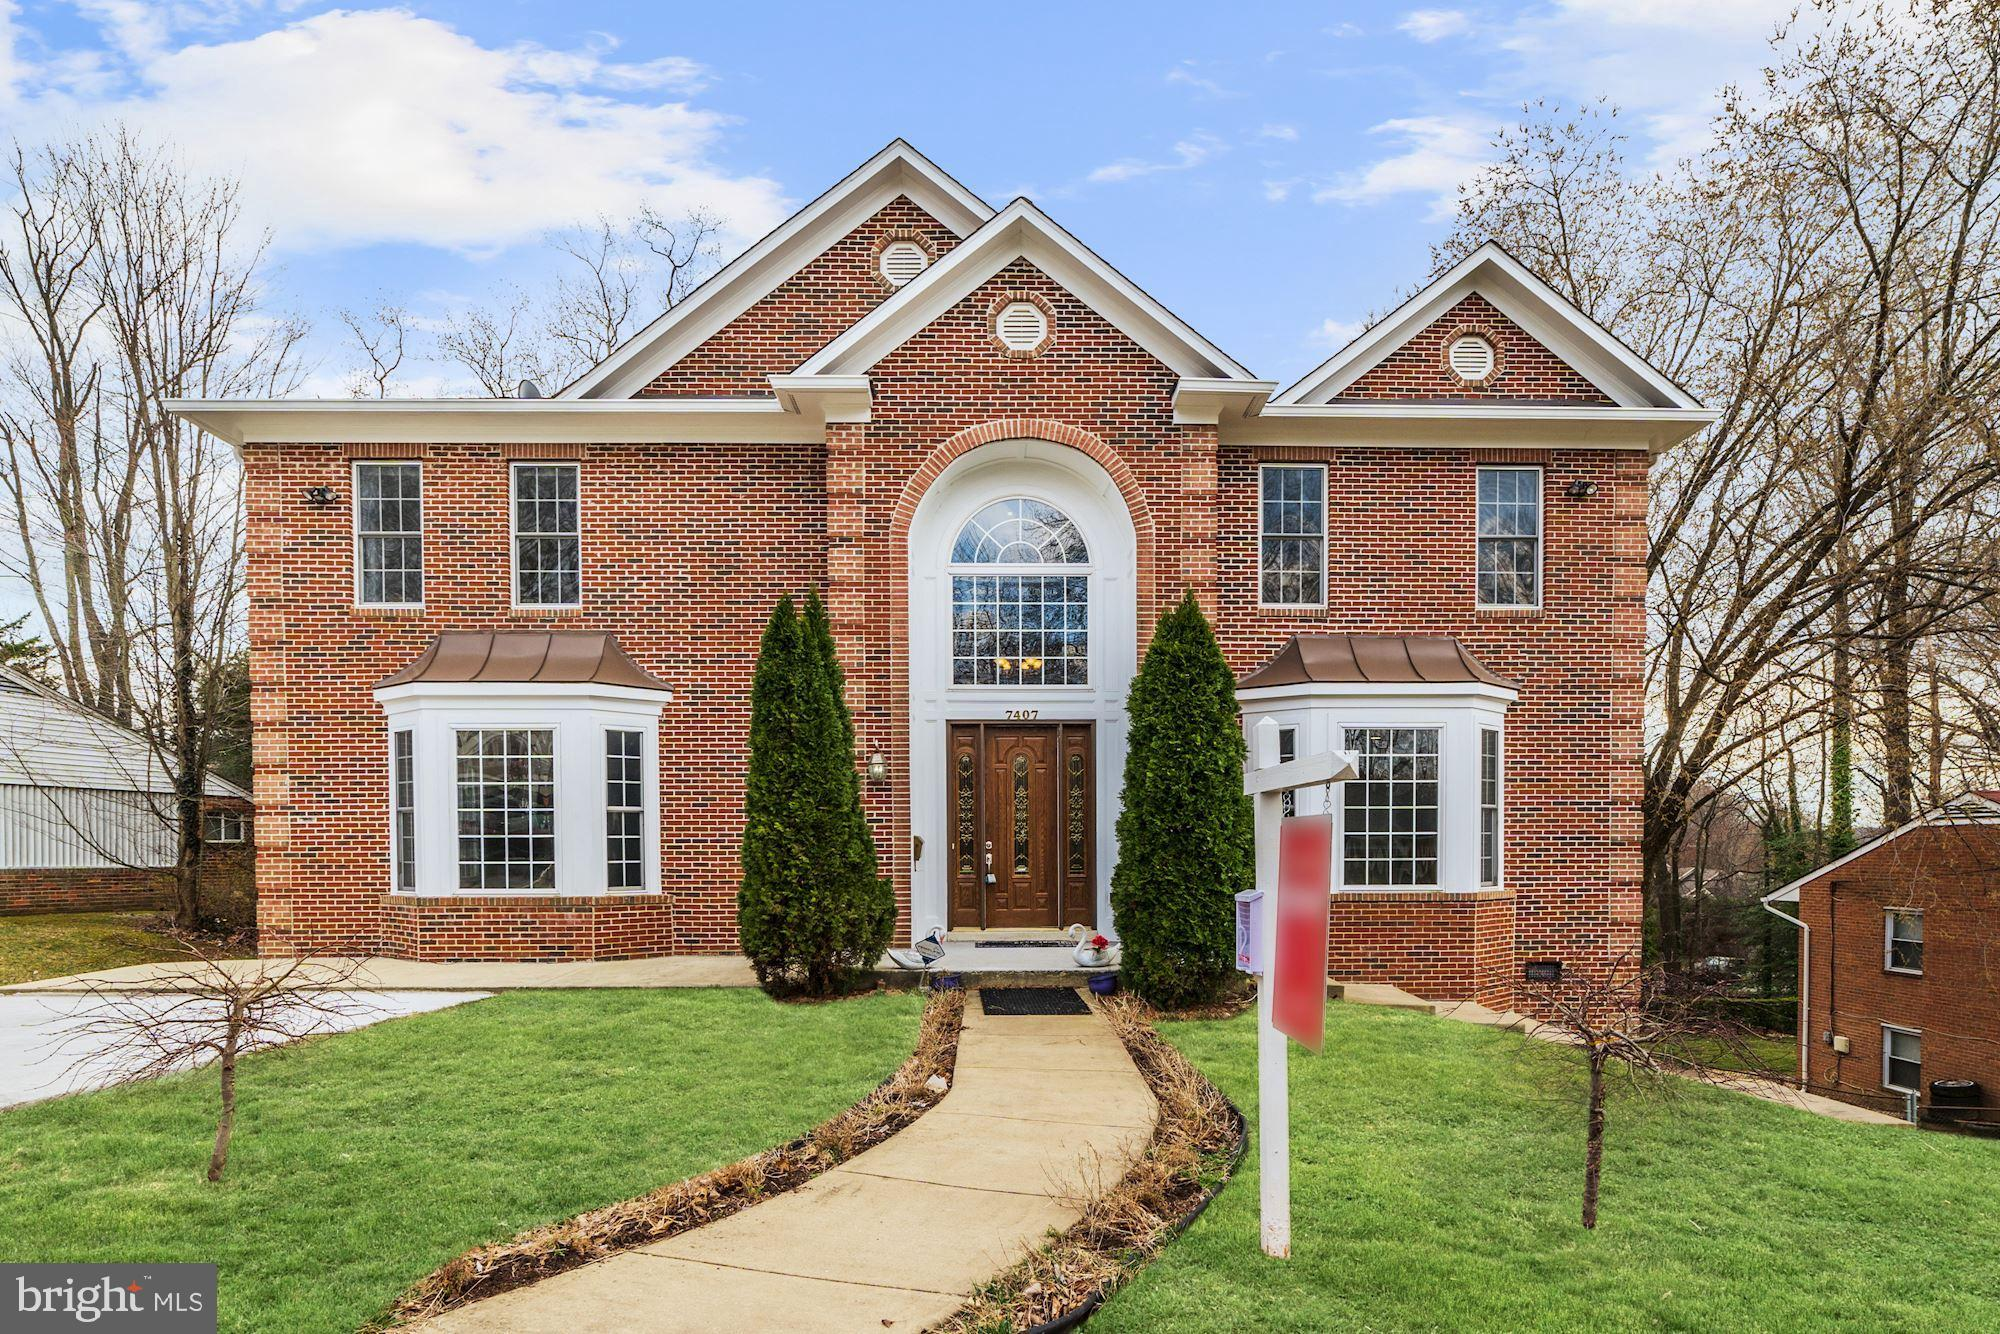 This elegant and beautiful brick front Colonial home is located in the Monticello Forest subdivision of Springfield. Well maintained, spacious,  multi-generational/move-in ready home has everything you are looking for! Grand entryway foyer with Palladian window, ceramic tile, and pendant chandelier. Superior craftsmanship and attention to detail are evident. Stunning curved doorways, crown molding, chair rail, and wainscotting.Gleaming hardwoods, large kitchen with double french doors to deck overlooking the private yard. 1 Main level BR + 1 Full BA, 6 Upper-Level BR's and 2 Full BA's.The finished Lower-Level has a full-size kitchen, LR/DR area, 1 Bedroom, 1 Full Bathroom, separate entrance. Close to Springfield Town Center, commuter lots, and much more. This is a  MUST SEE HOME!!!